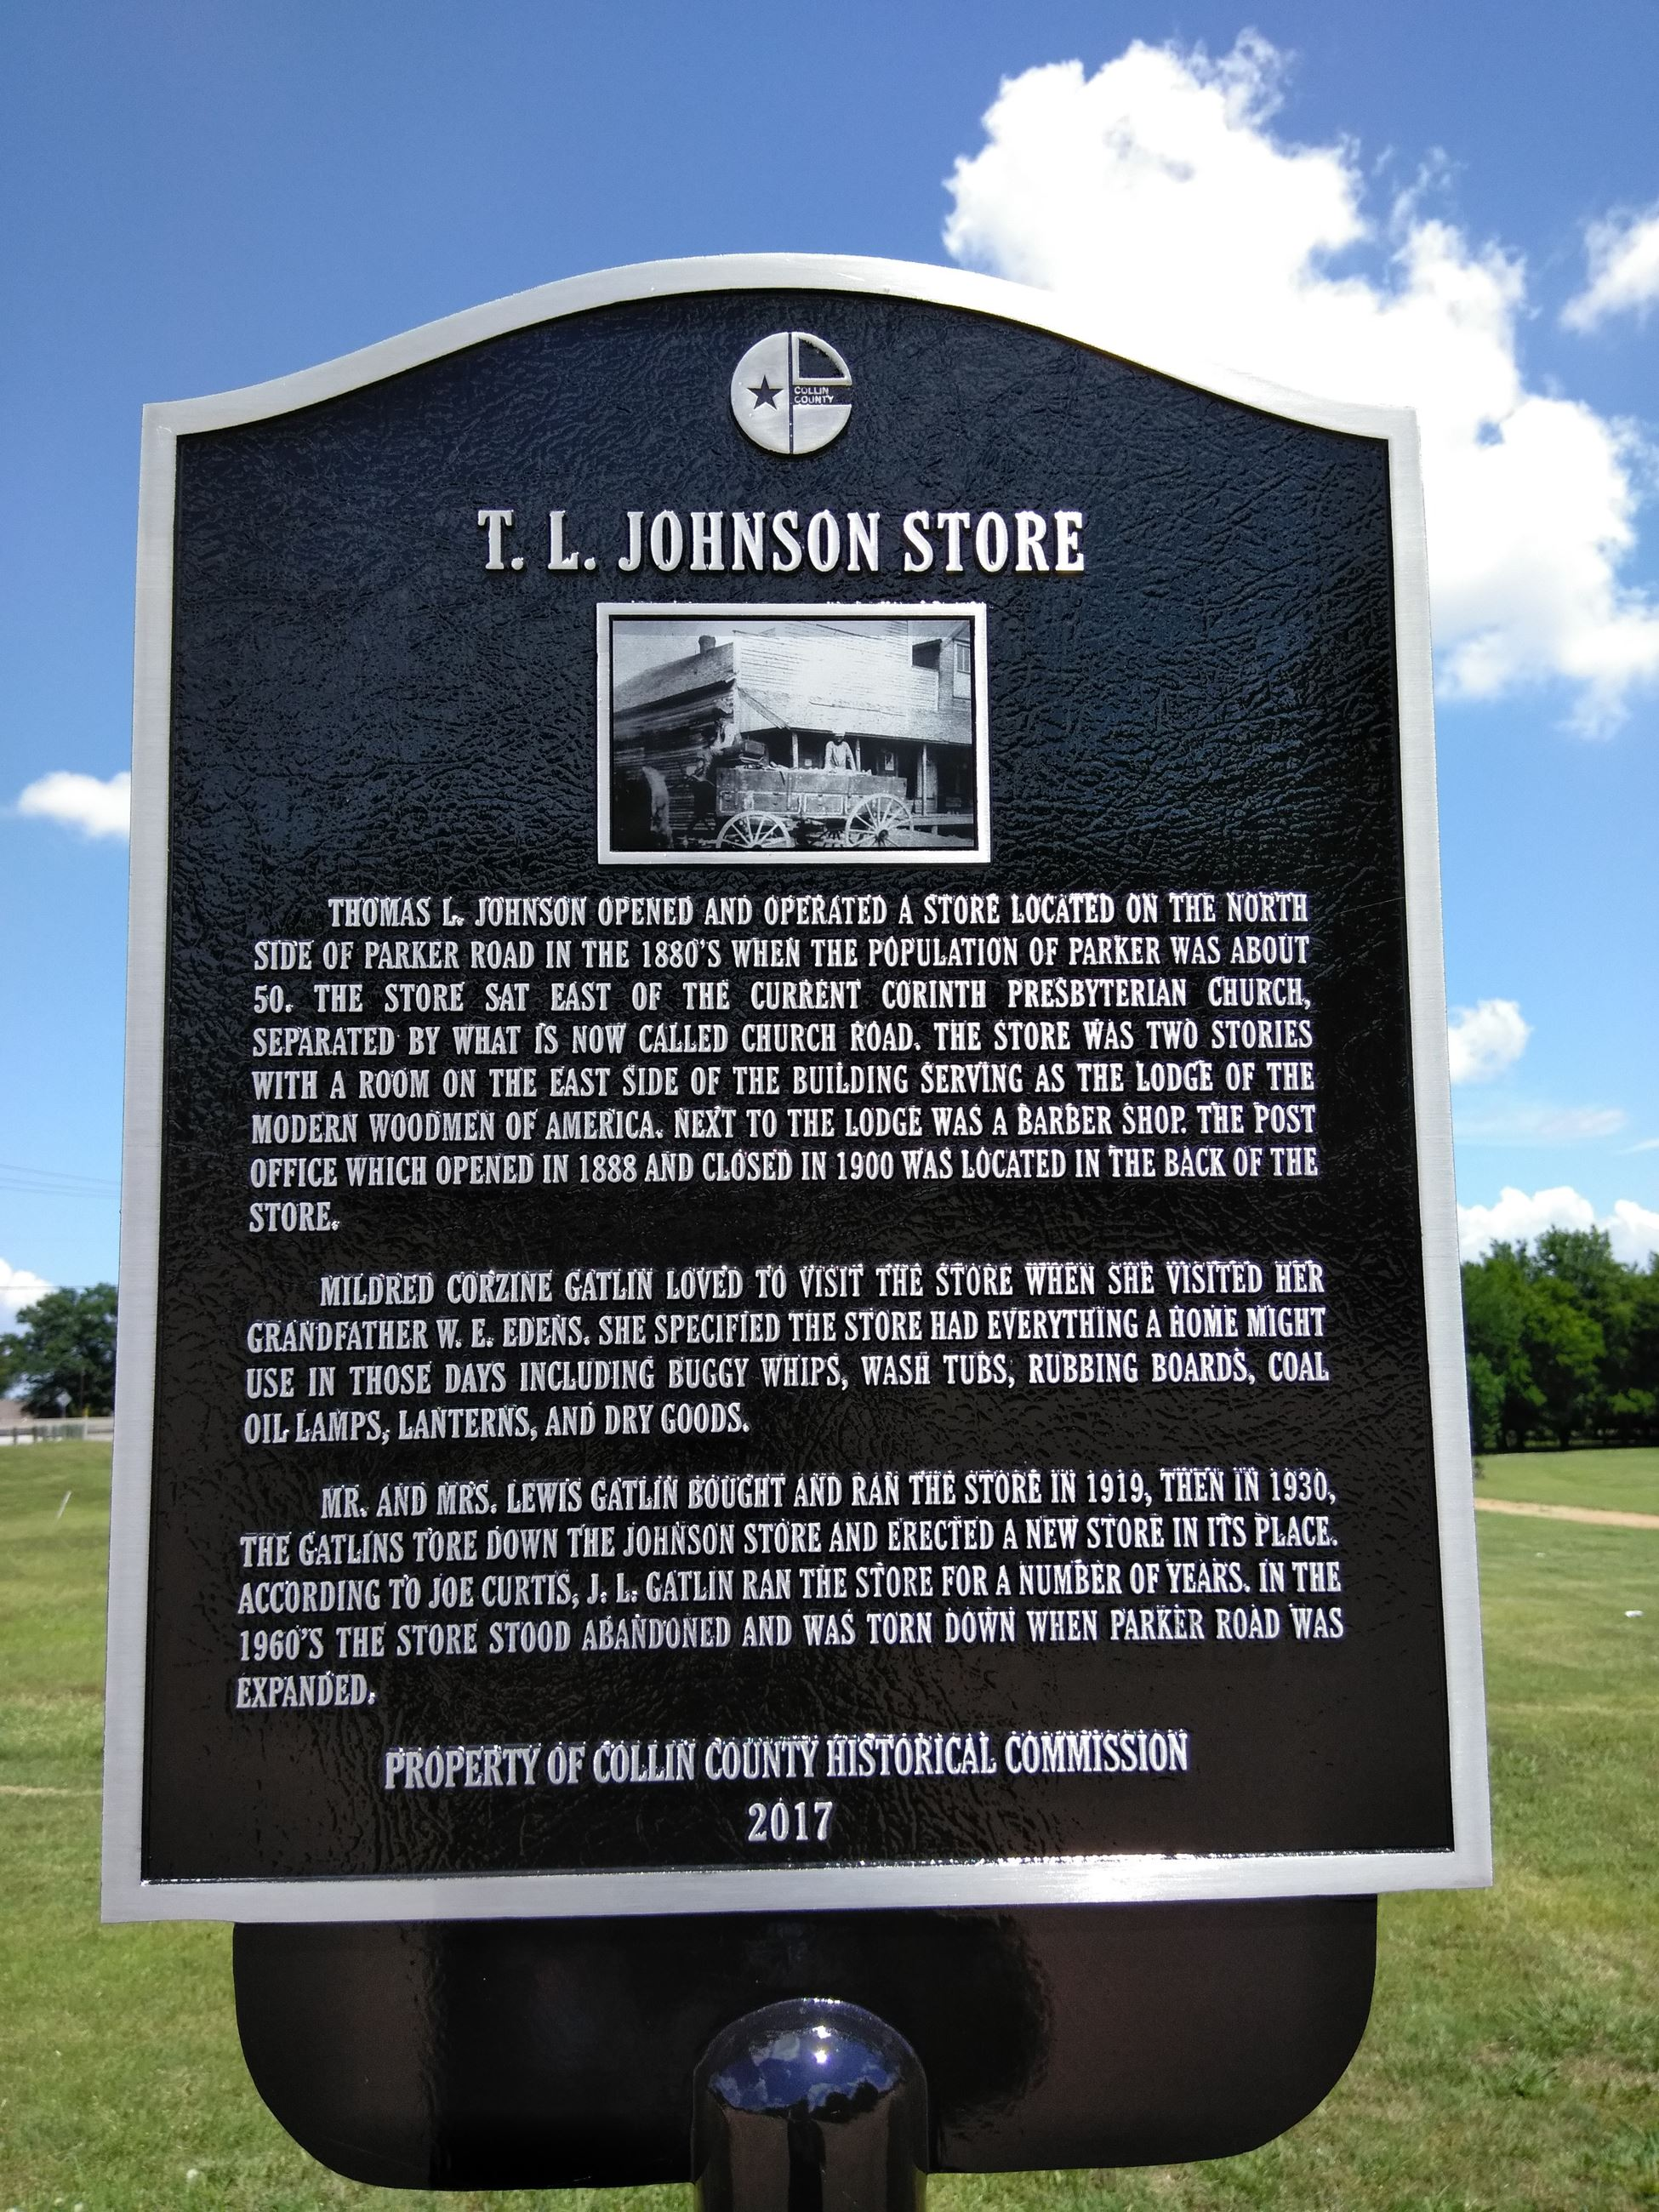 T L Johnson Store Historical Marker